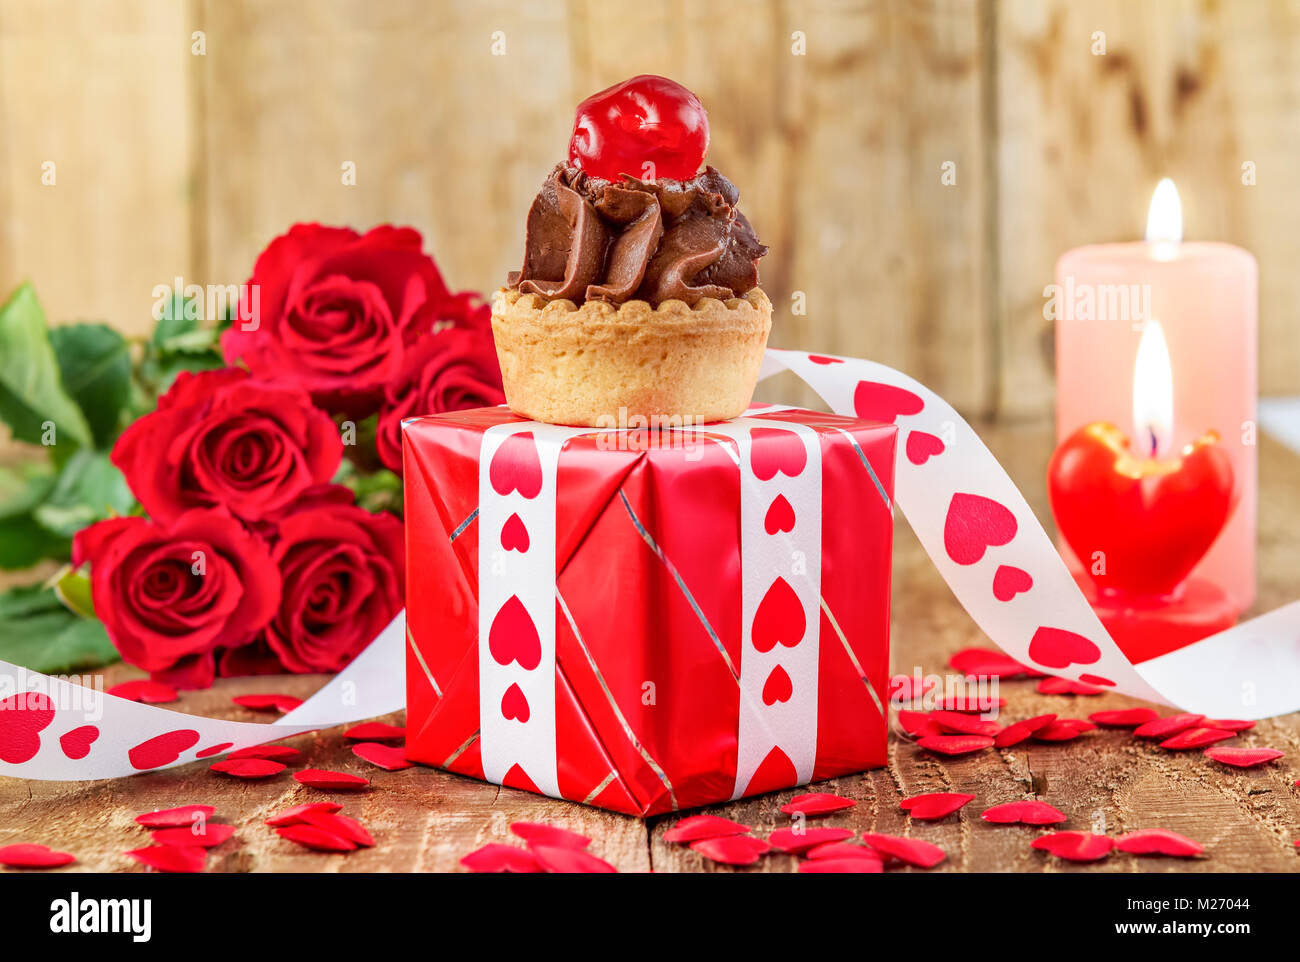 Cupcake with cherry over red gift box in front of bouquet of red roses and candles on wooden background. Valentines - Stock Image